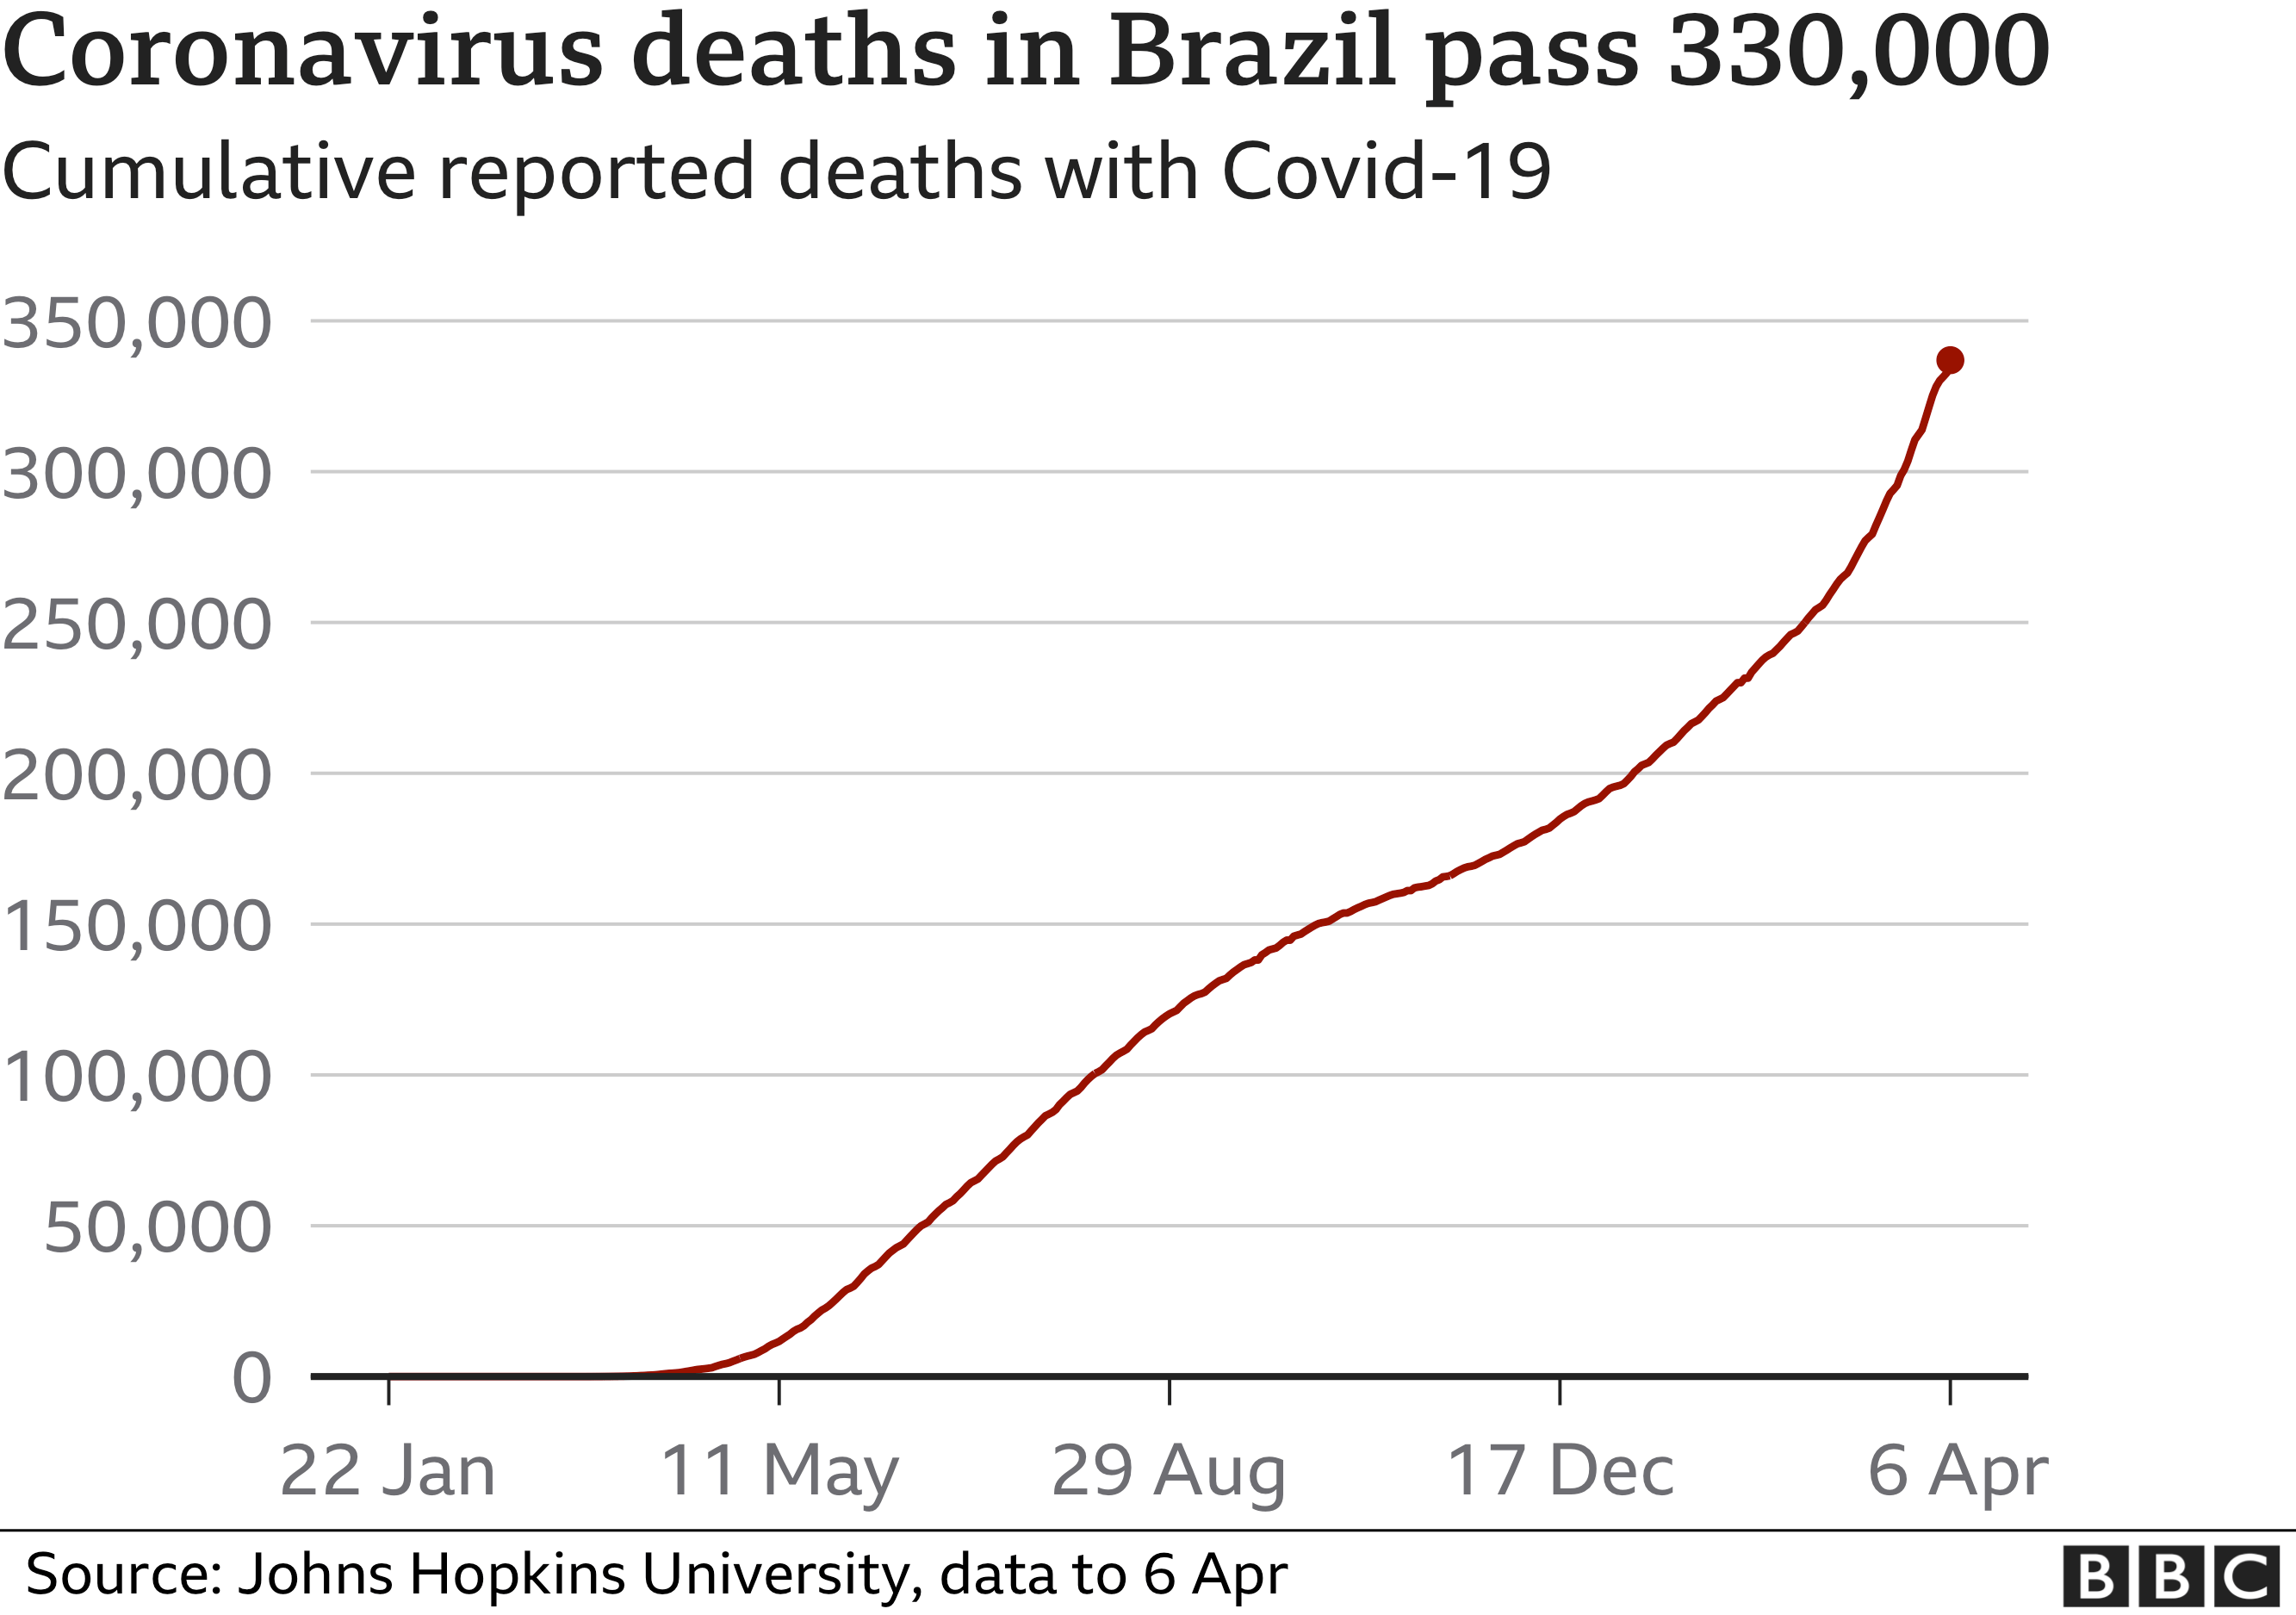 Image shows a graph charting deaths in Brazil